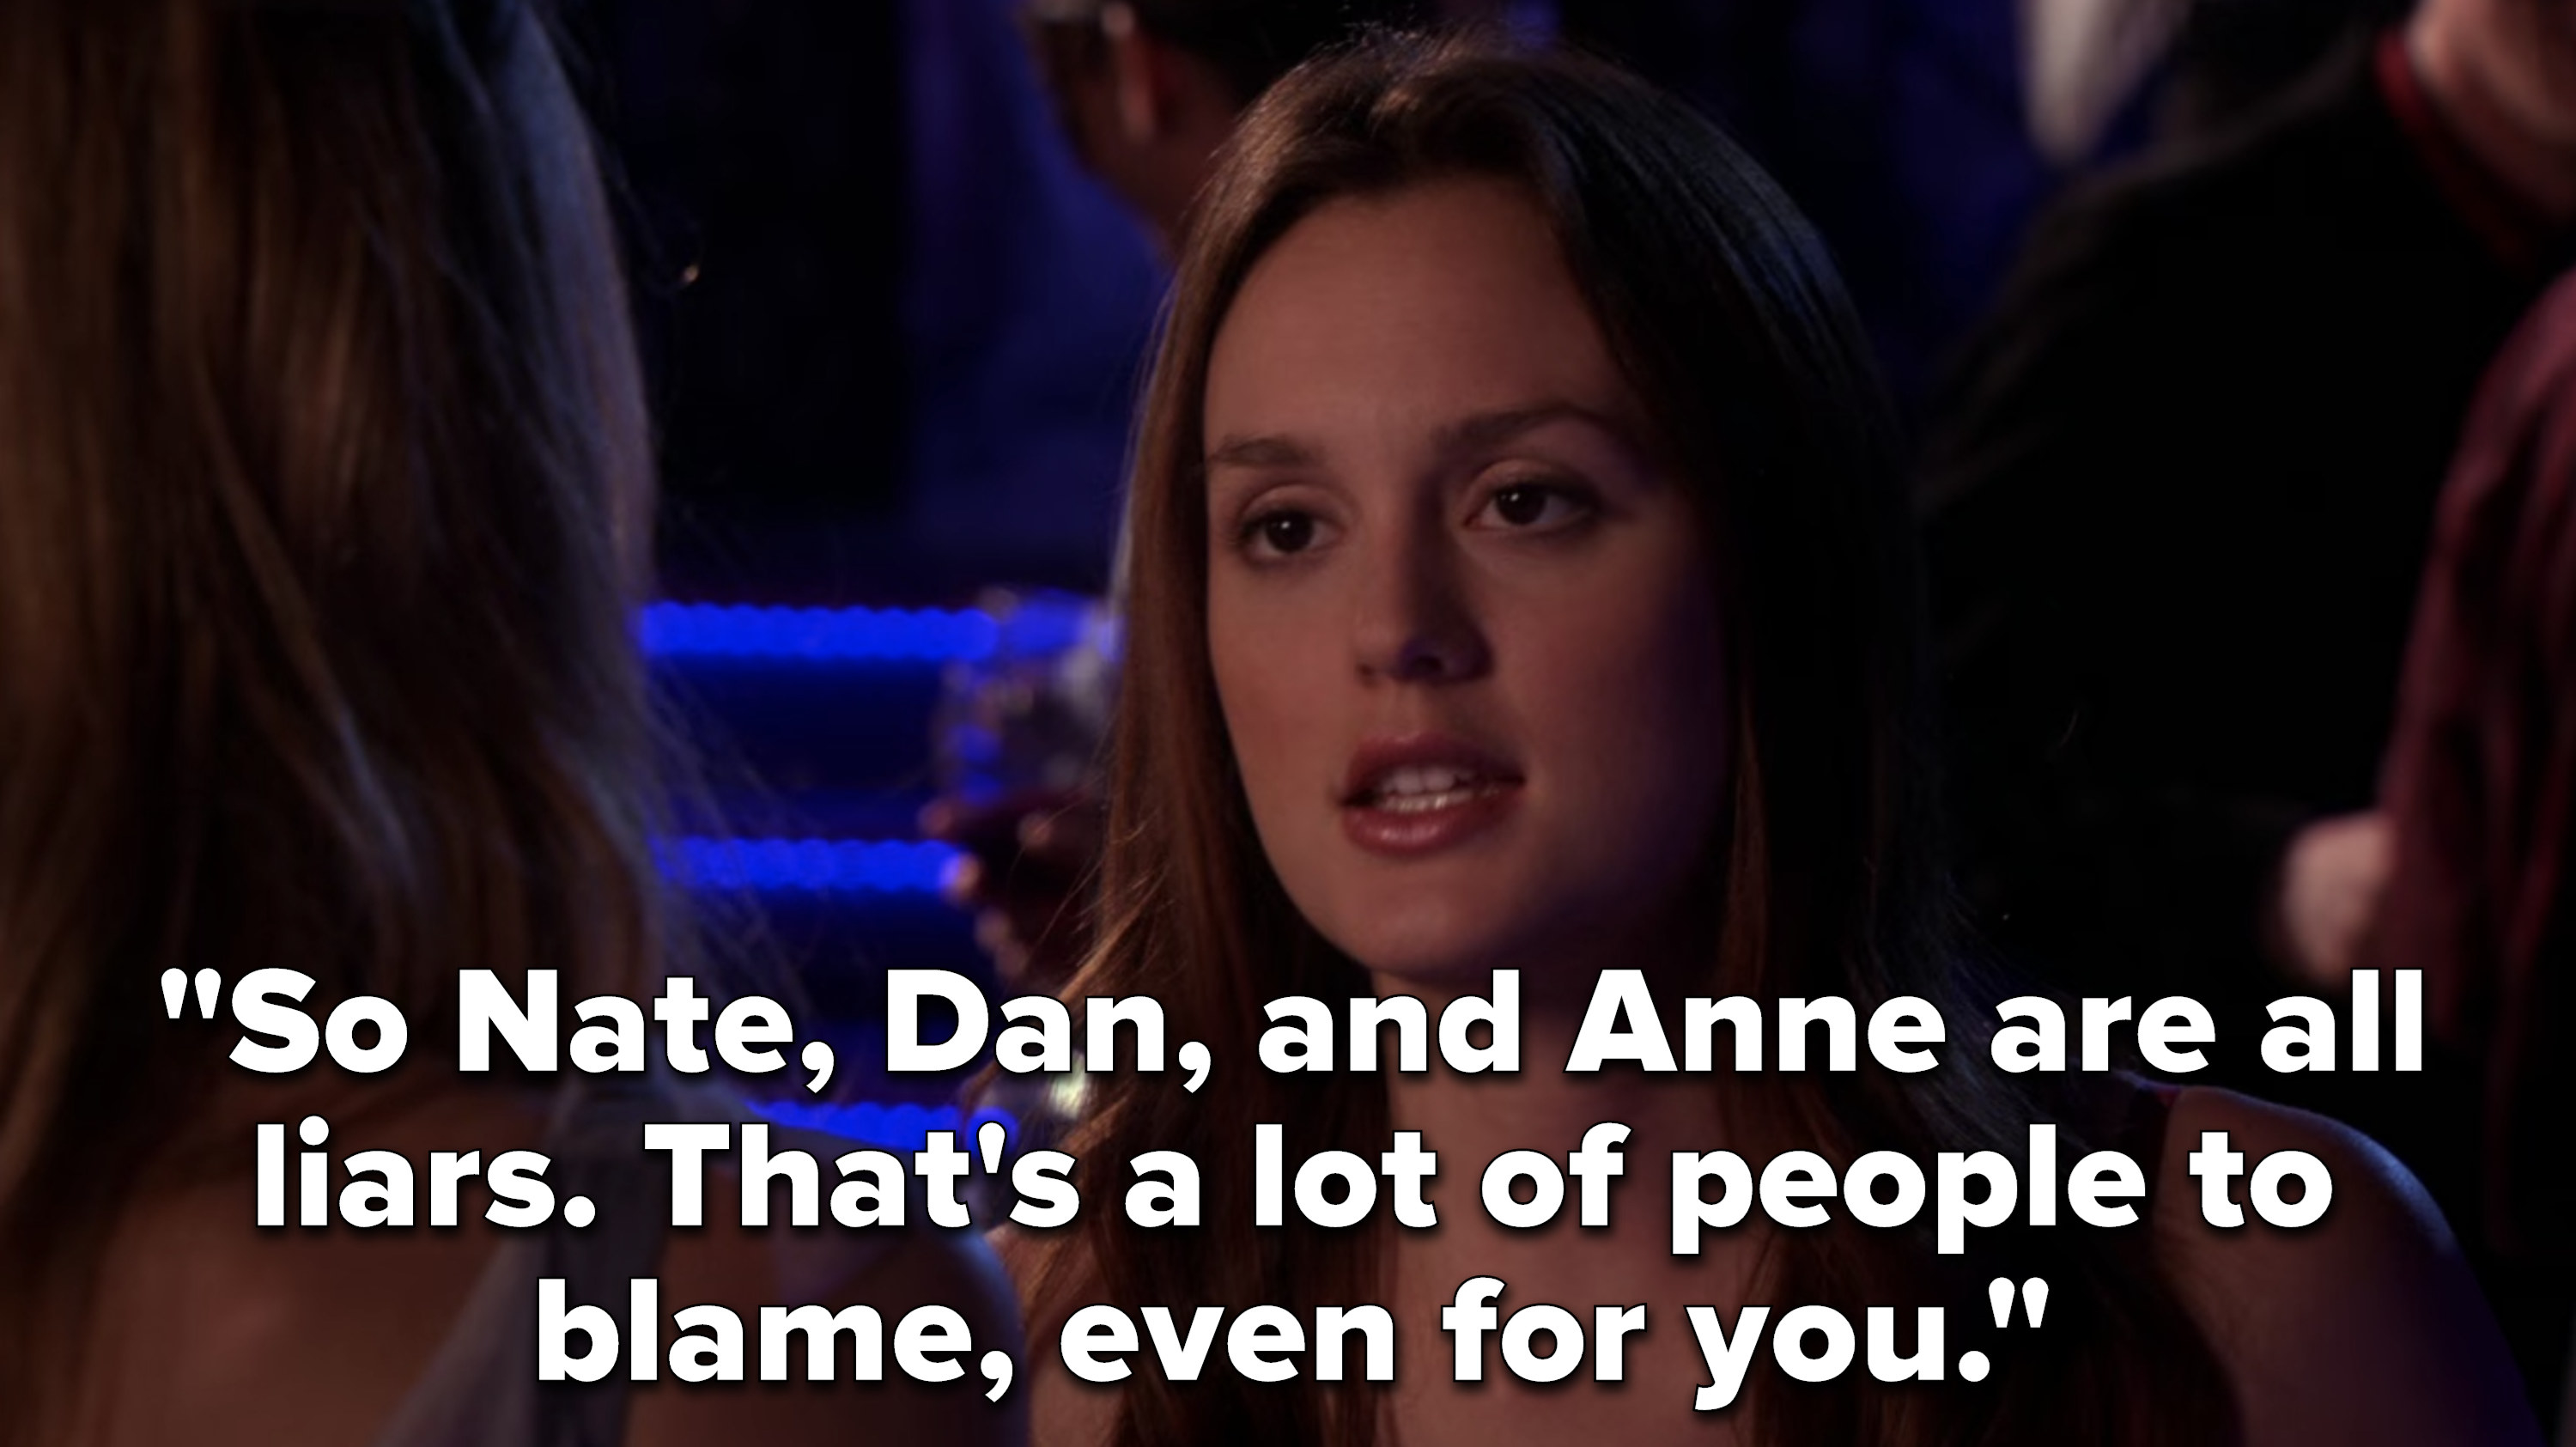 """So Nate, Dan, and Anne are all liars. That's a lot of people to blame, even for you"""